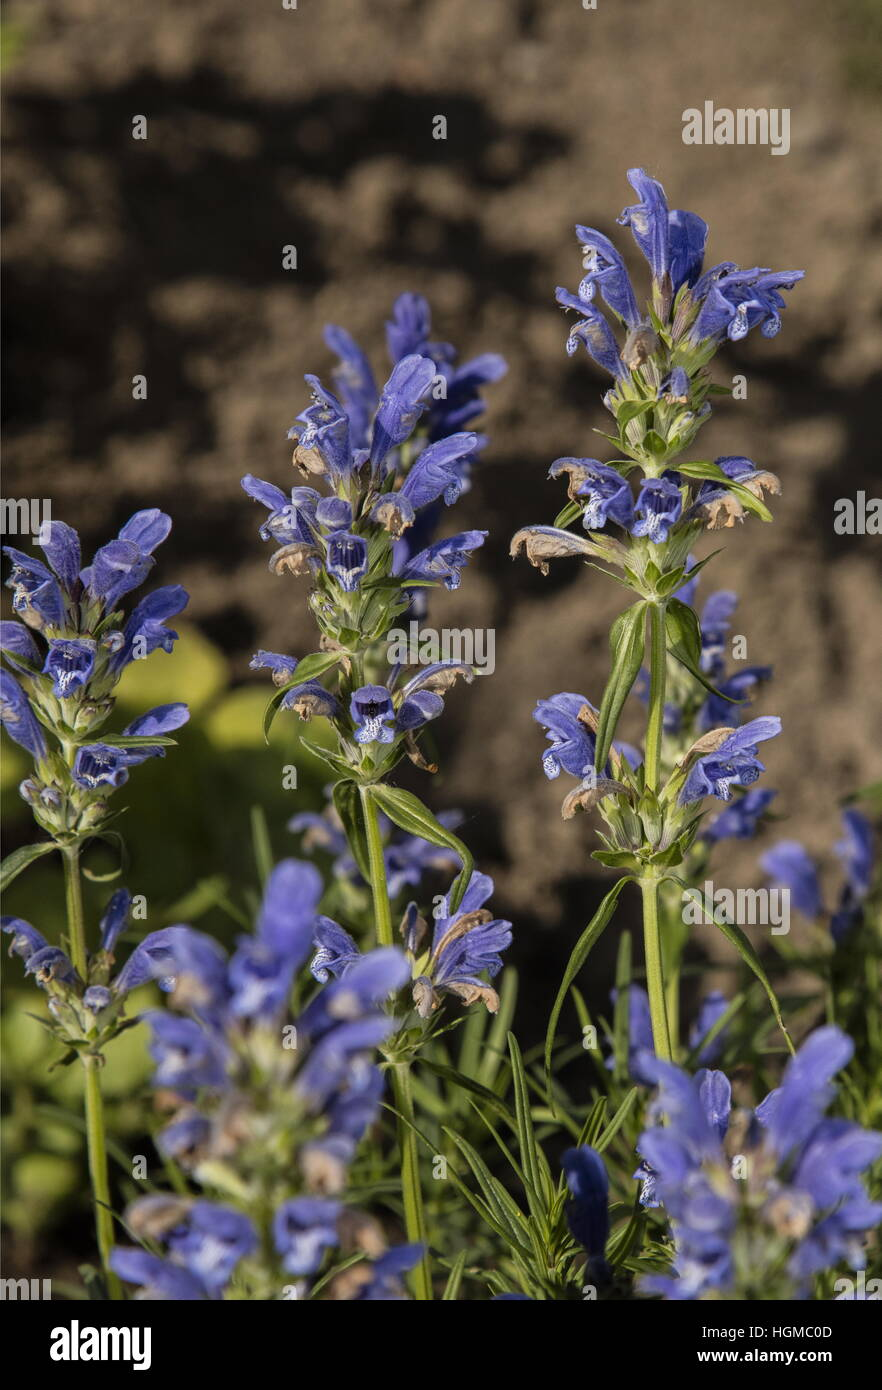 Dragon's Head, Dracocephalum grandiflorum, from Siberia, widely grown in gardens. - Stock Image